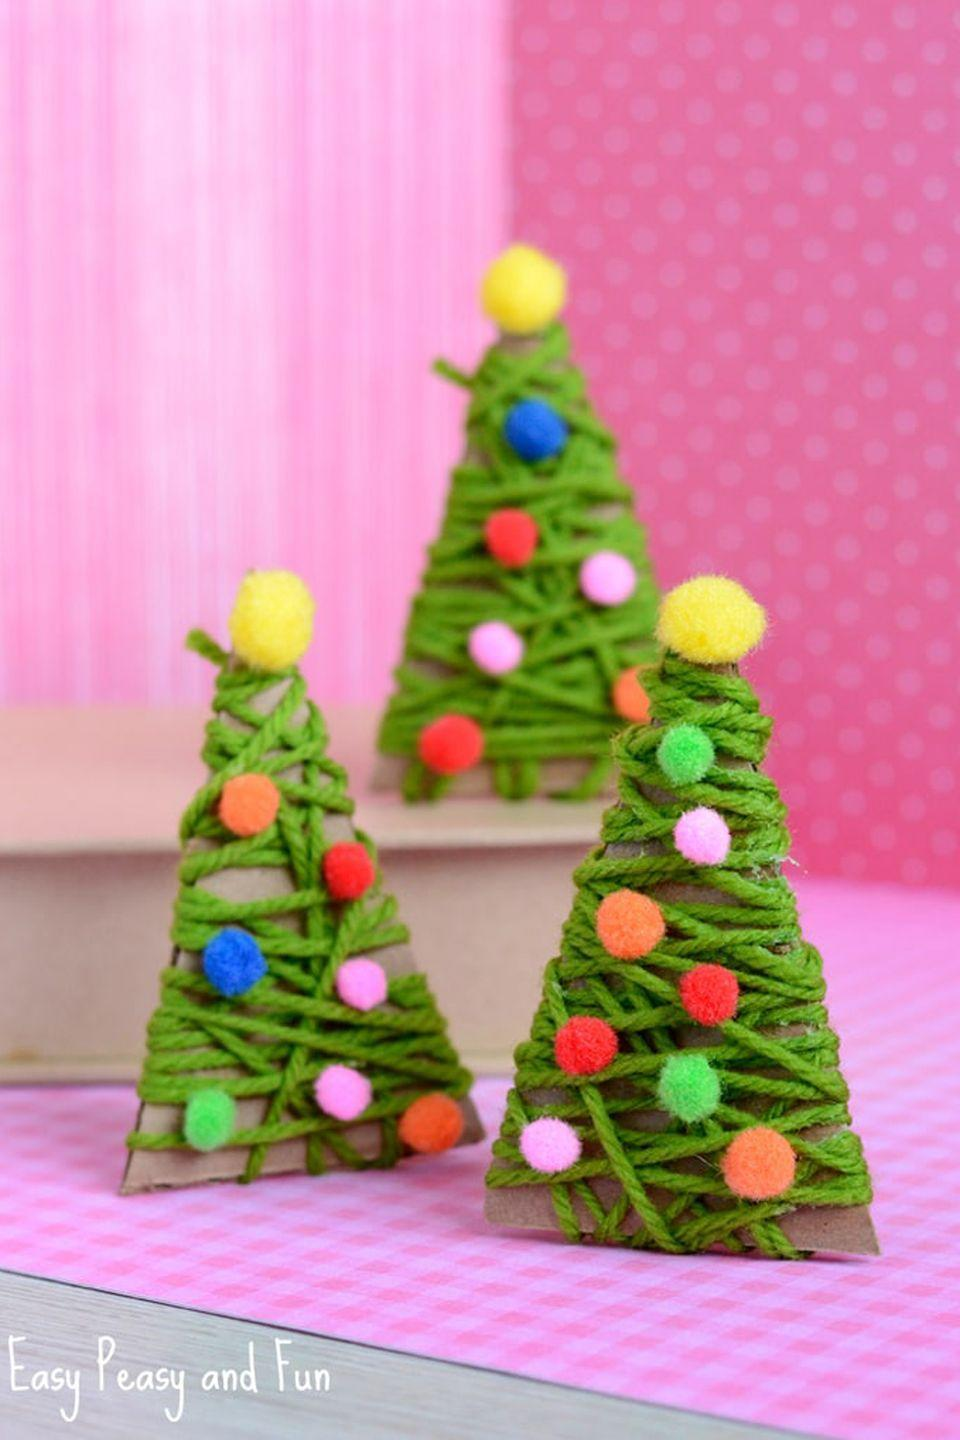 "<p><span class=""redactor-invisible-space"">If only decorating a real Christmas tree was <em>this</em> easy!</span></p><p><strong>Get the tutorial at <a href=""https://www.easypeasyandfun.com/yarn-wrapped-christmas-tree-ornaments/"" rel=""nofollow noopener"" target=""_blank"" data-ylk=""slk:Easy Peasy and Fun"" class=""link rapid-noclick-resp"">Easy Peasy and Fun</a>.</strong></p>"